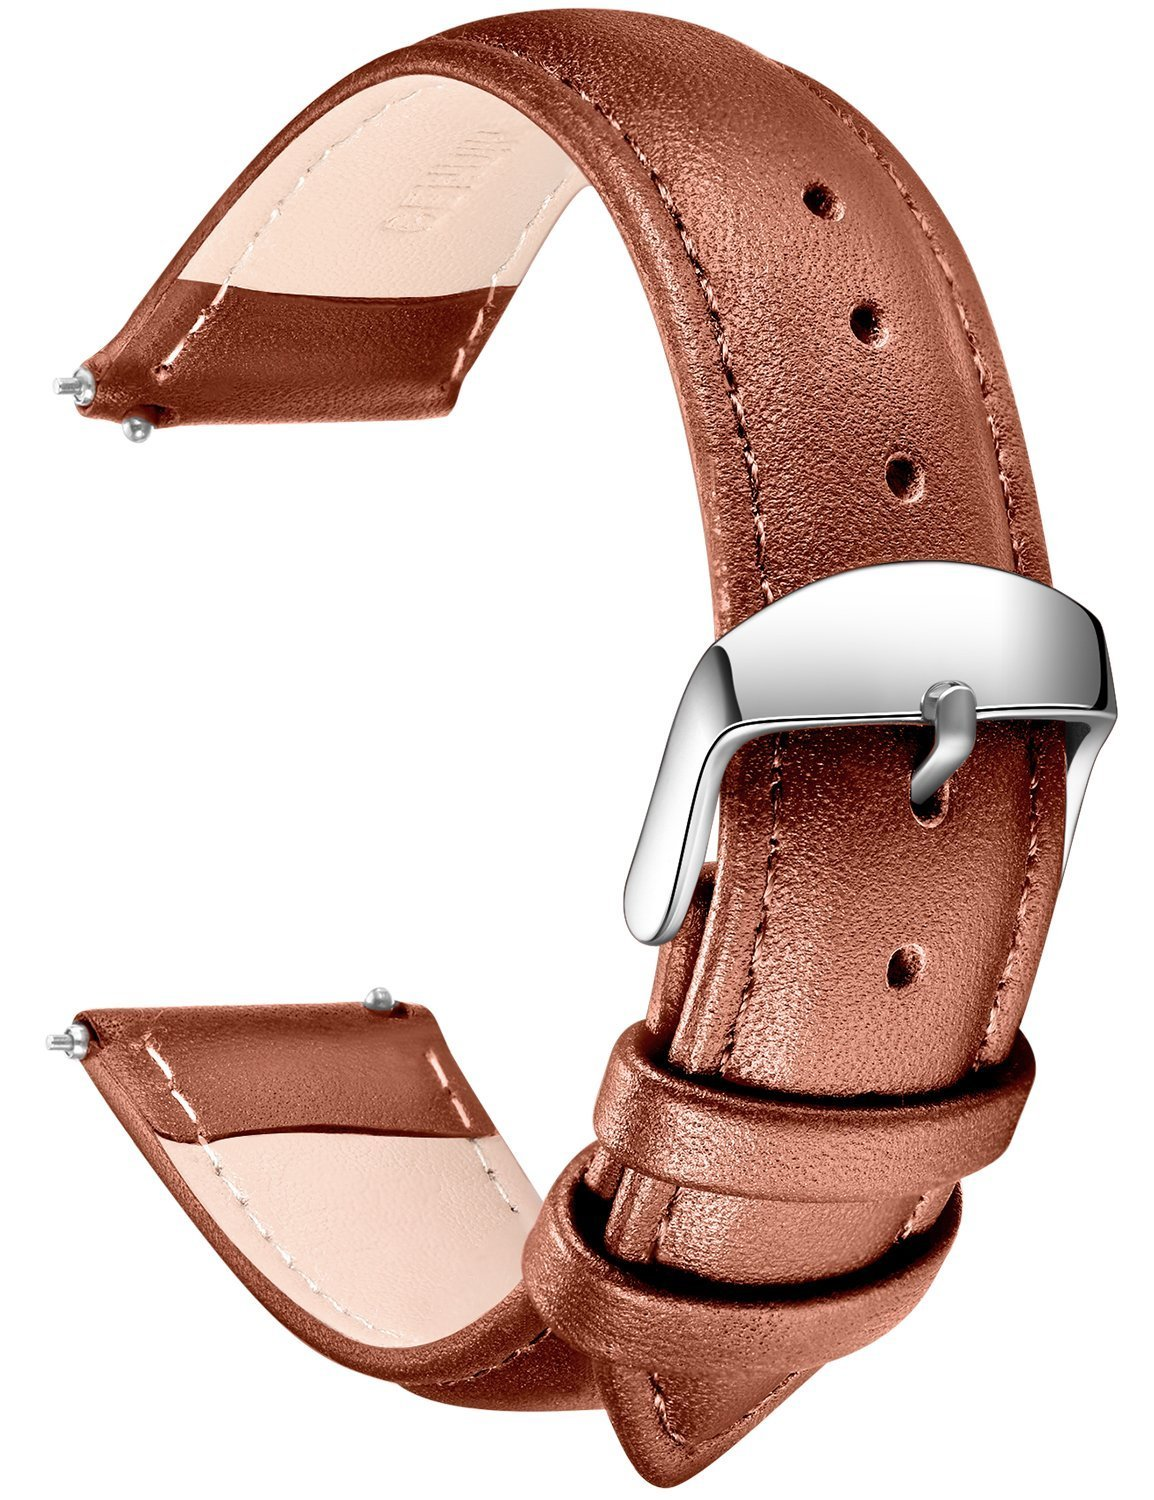 SONGDU Quick Release Leather Watch Band, Full Grain Genuine Leather Replacement Watch Strap with Stainless Metal Buckle Clasp 16mm, 18mm, 20mm, 22mm, 24mm (18mm, Light Brown)